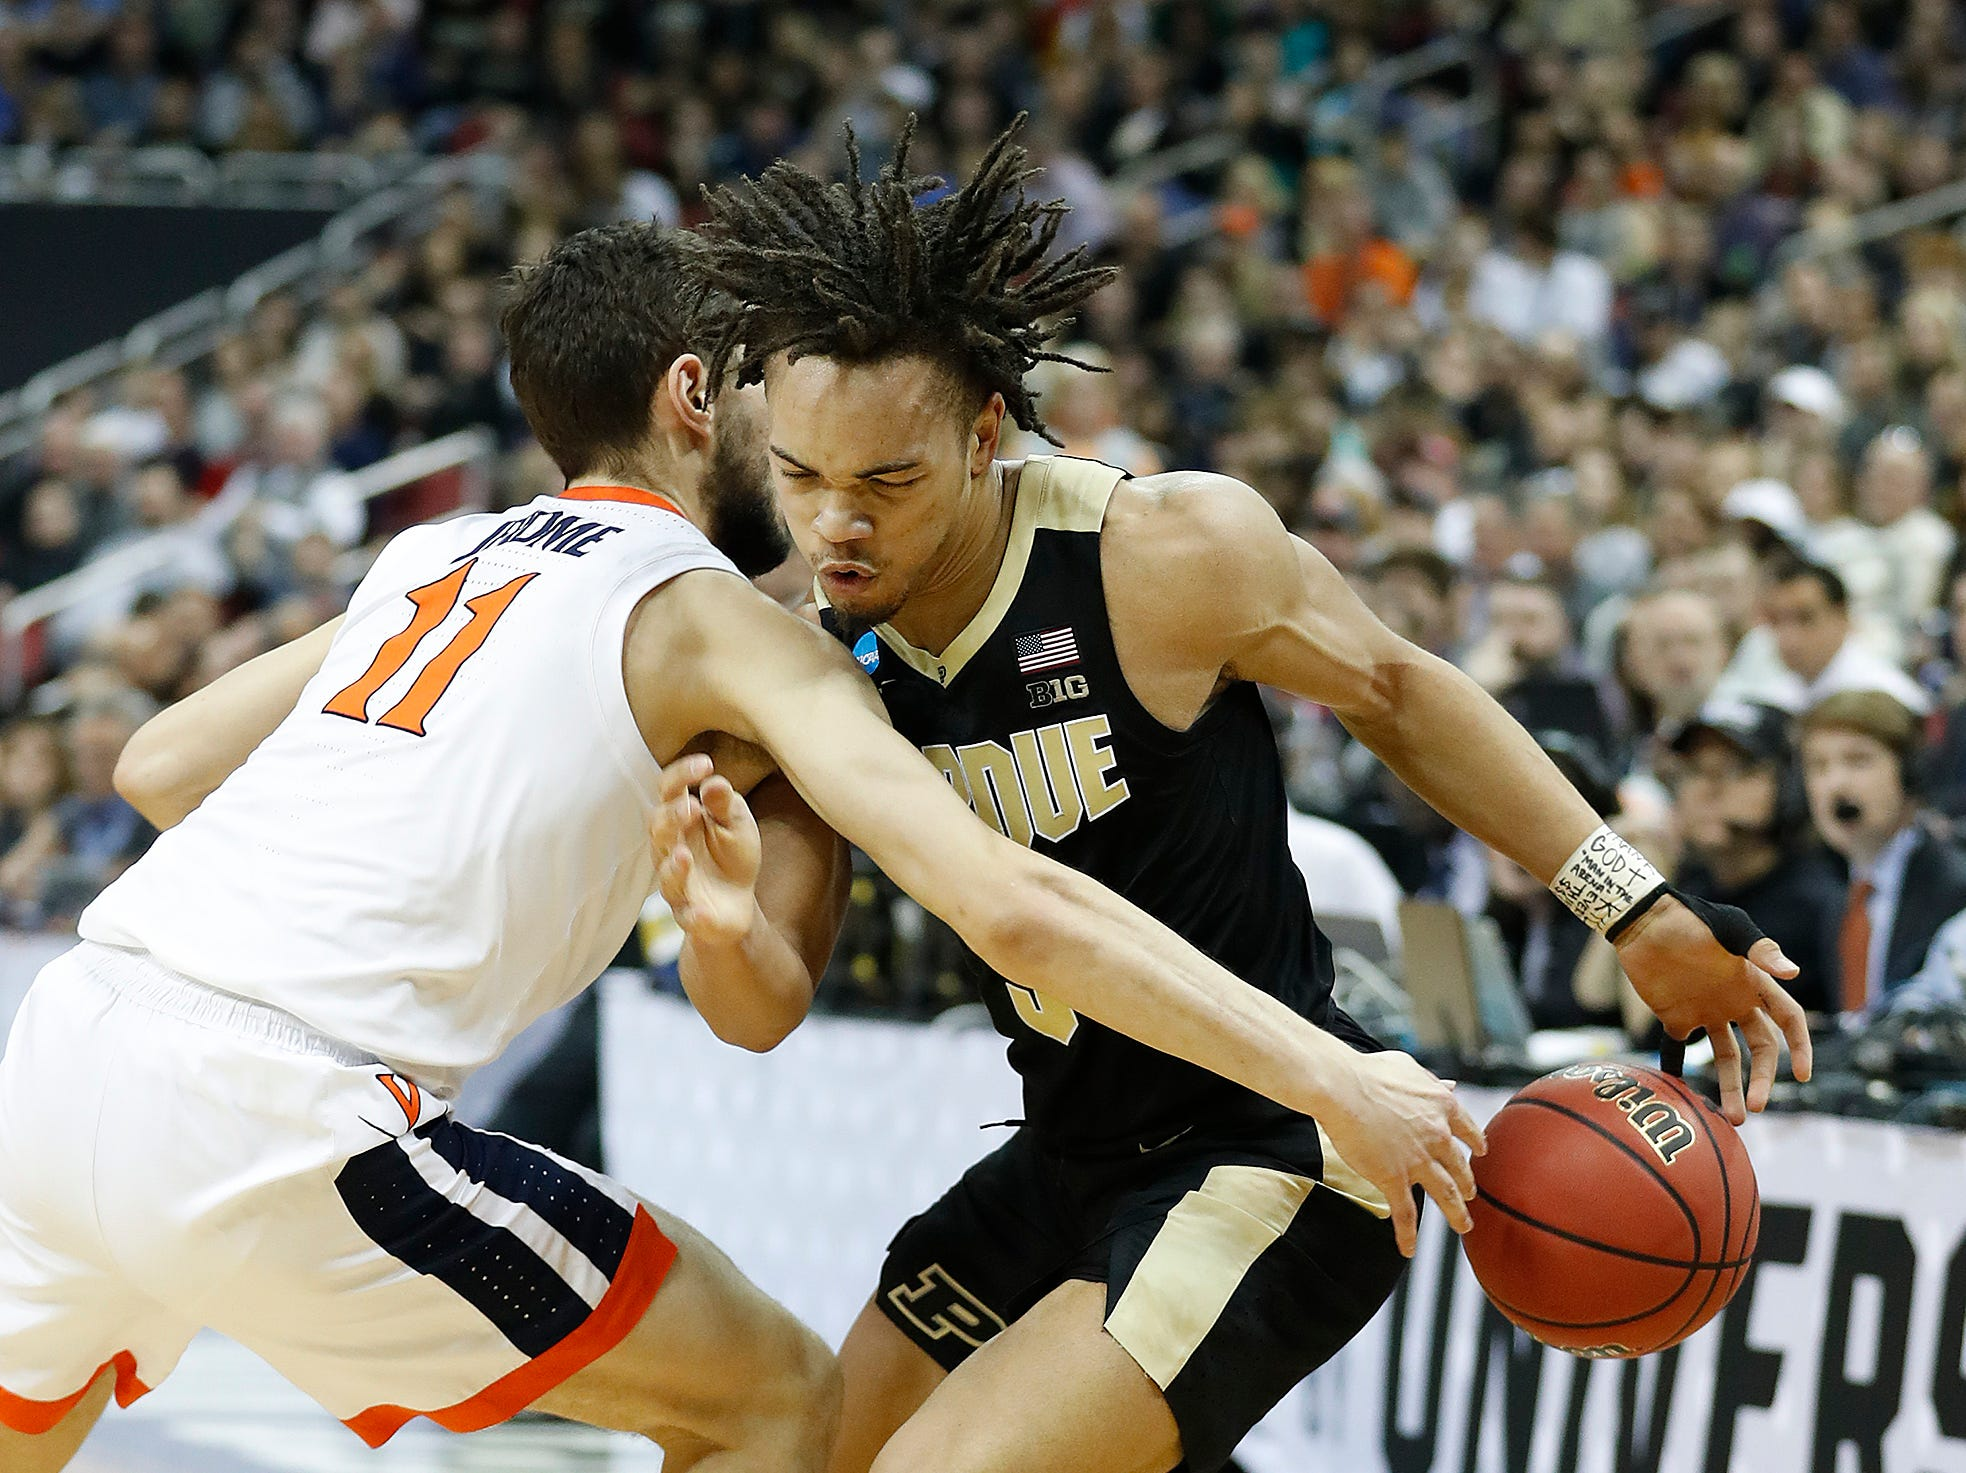 "Purdue Boilermakers guard Carsen Edwards (3) is fouled by Virginia Cavaliers guard Ty Jerome (11) in the first half of their NCAA Division I Basketball Championship ""Elite 8"" basketball game at the KFC Yum! Center in Louisville, KY., on Saturday, Mar 30, 2019."